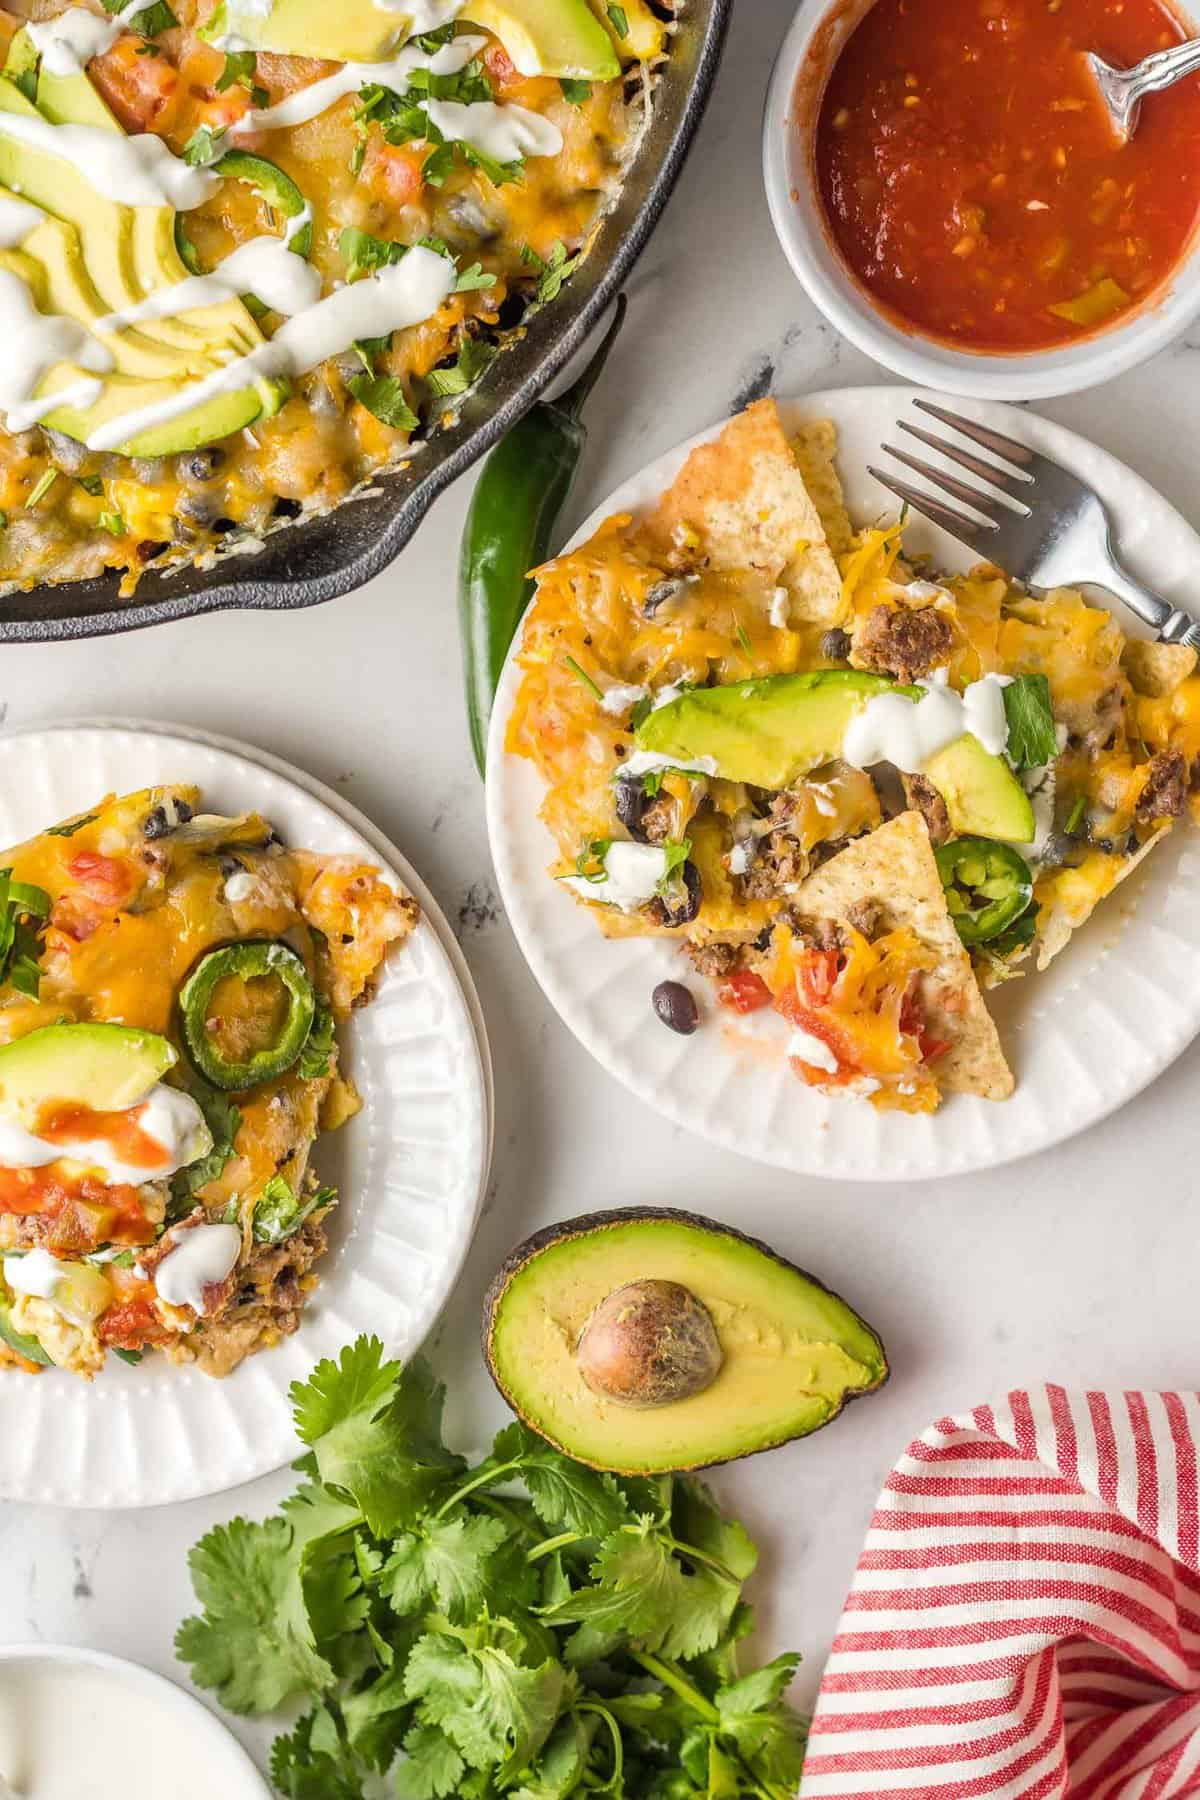 Overhead view of two plates and one skillet full of breakfast nachos.